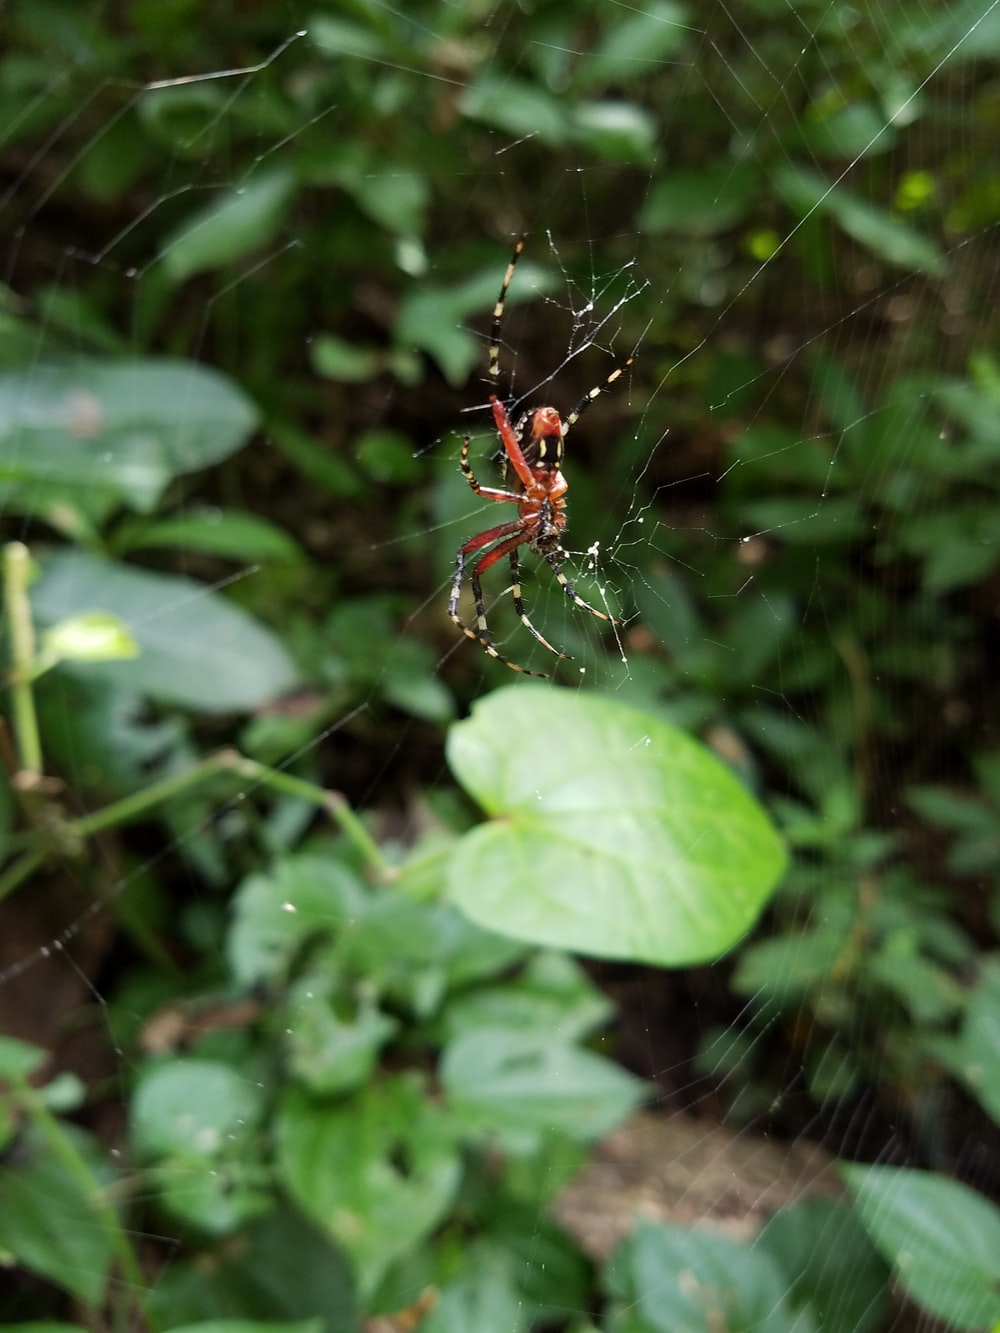 red and black spider on green leaf during daytime